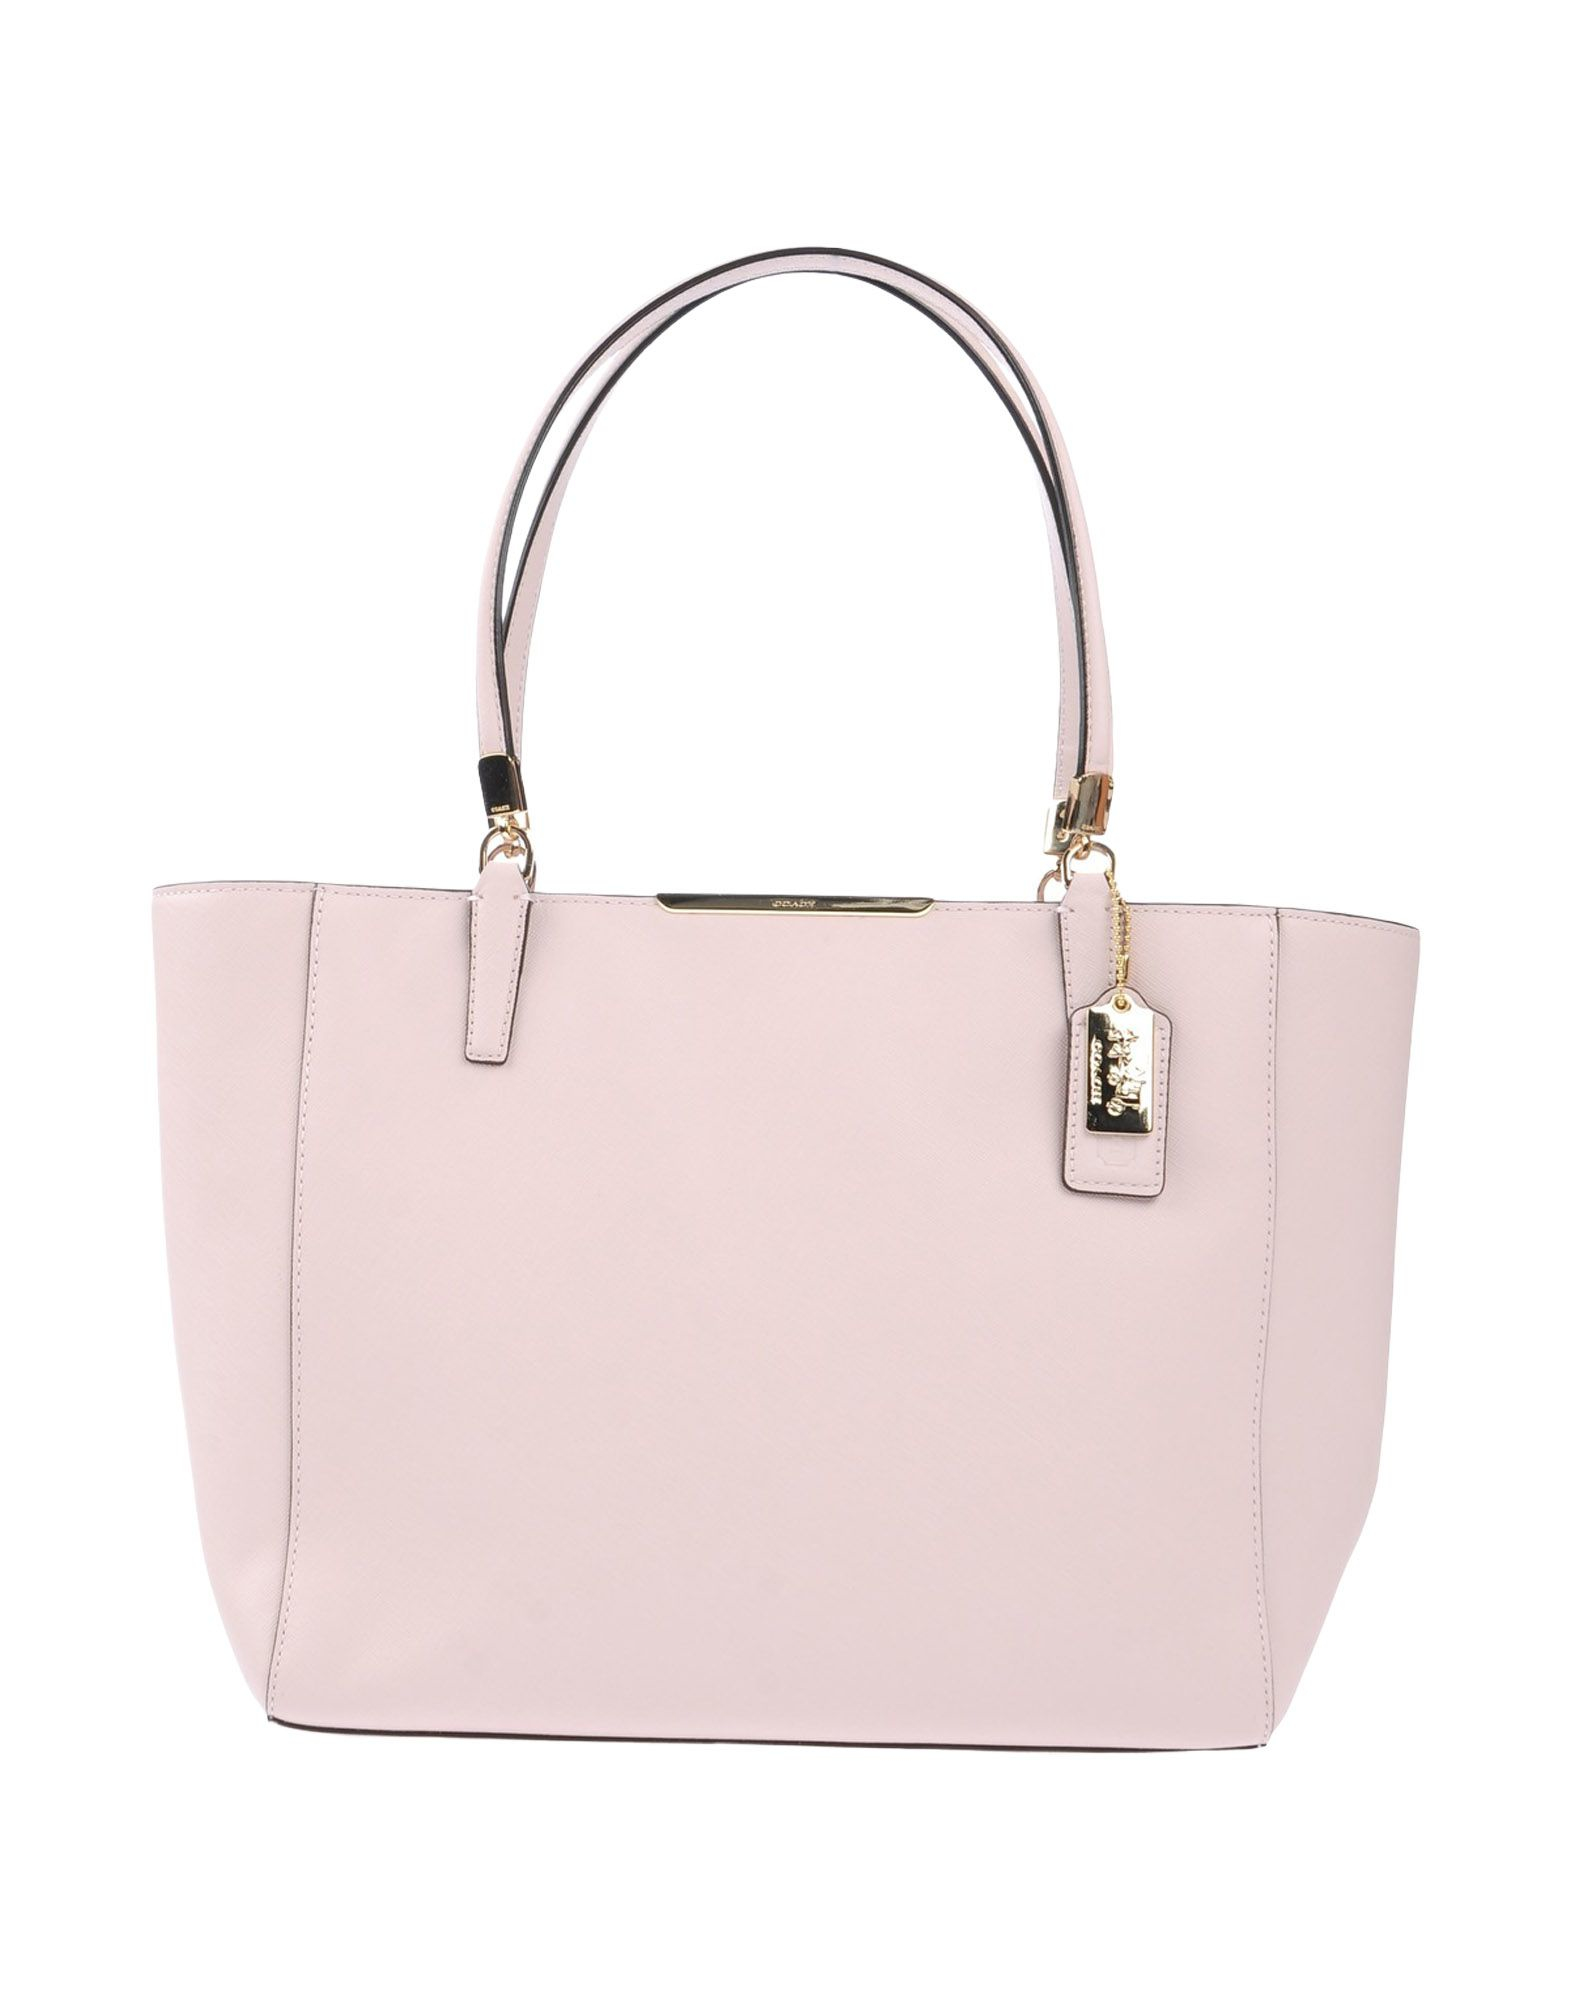 Coach Handbag in Pink | Lyst